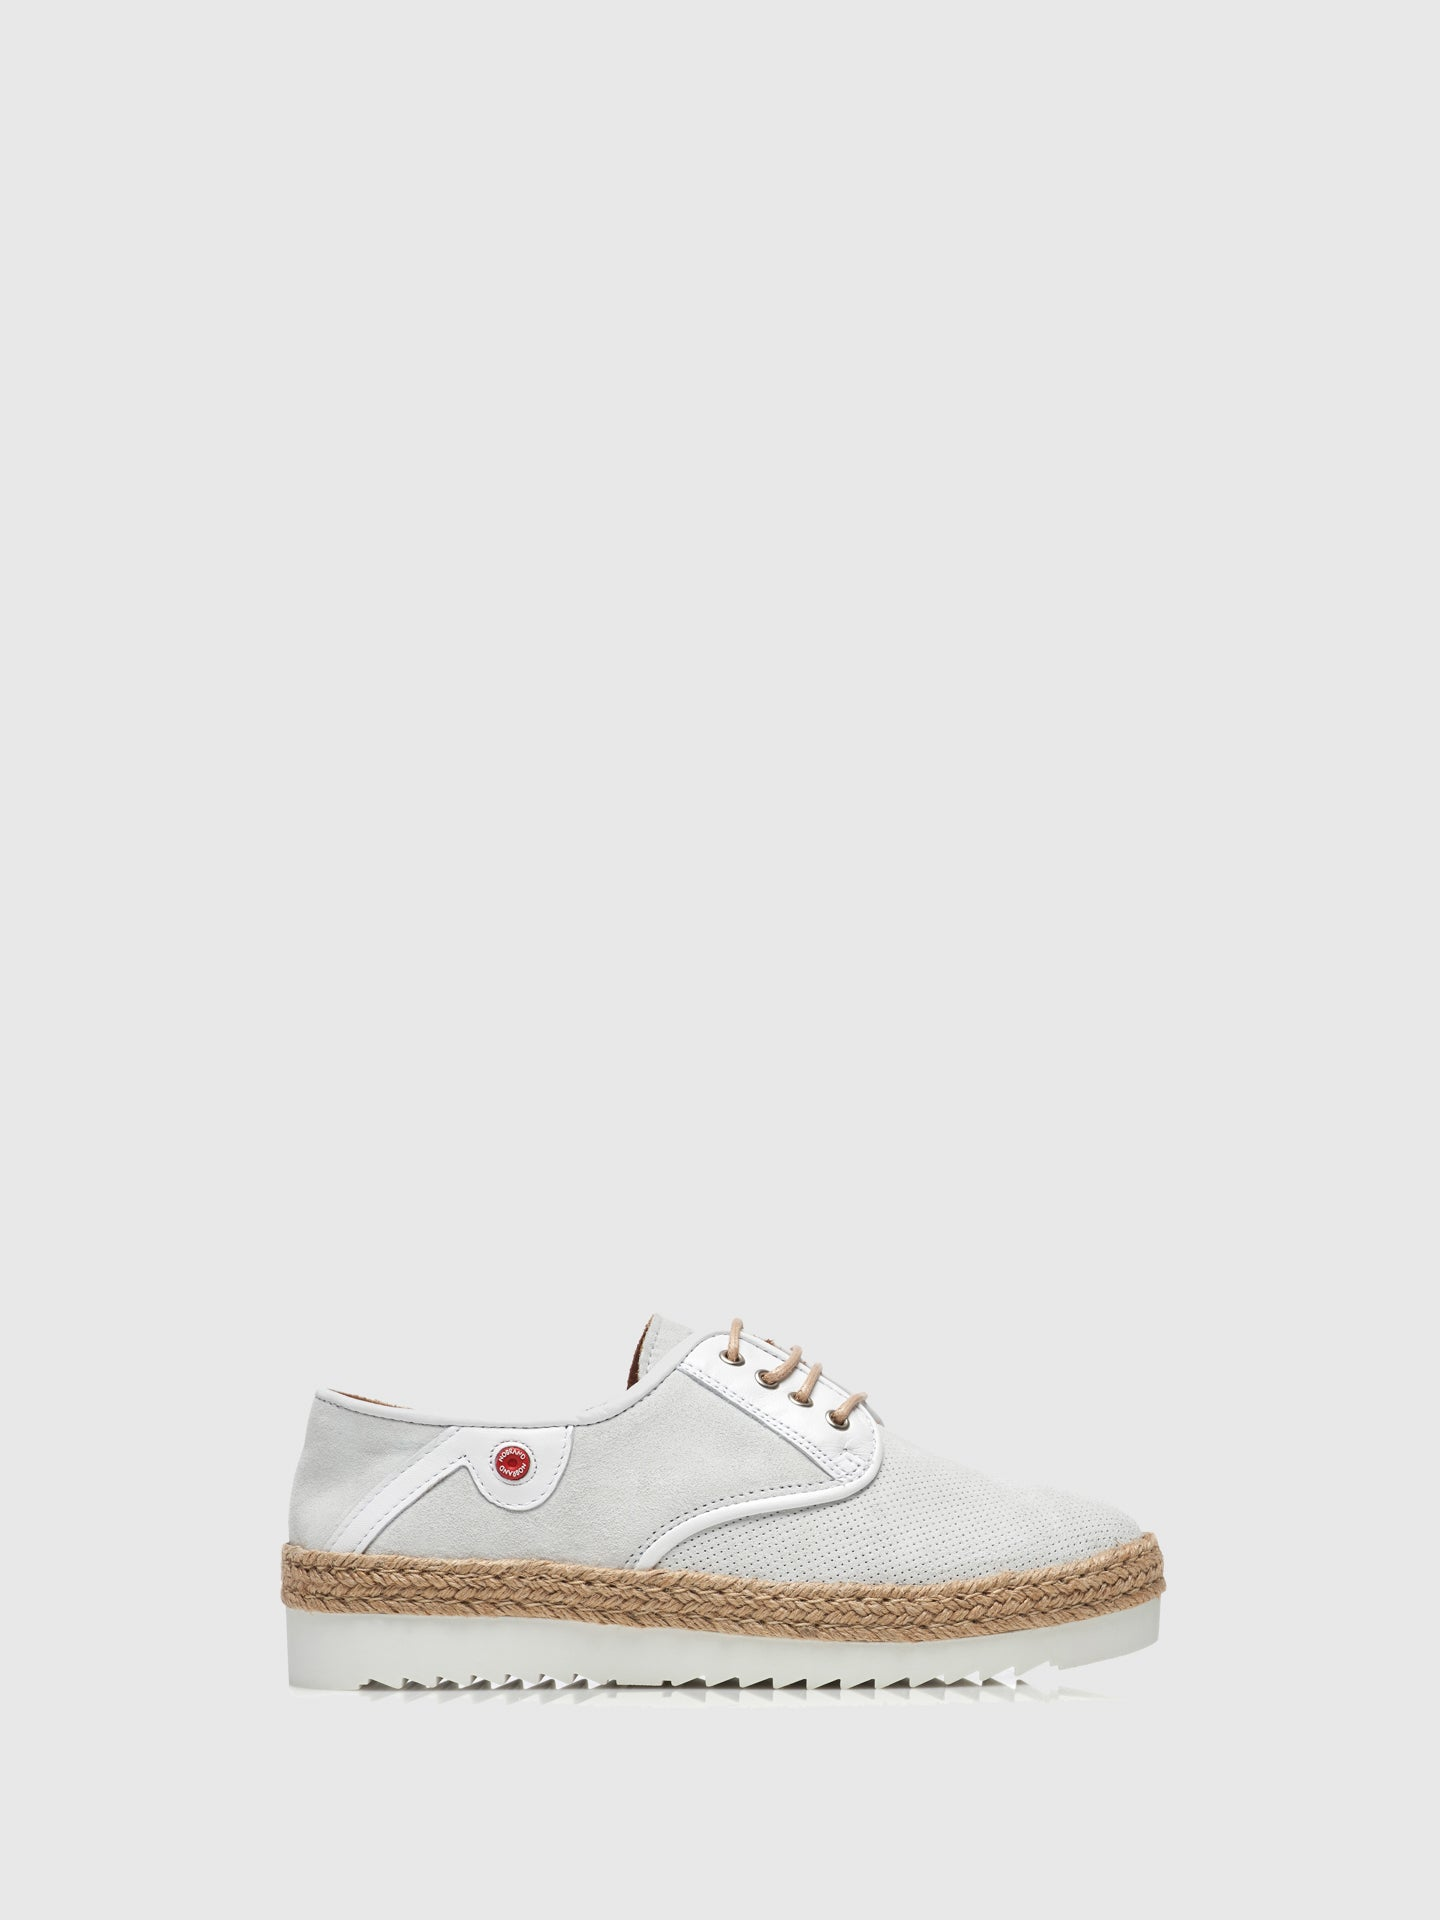 Nobrand White Flat Shoes